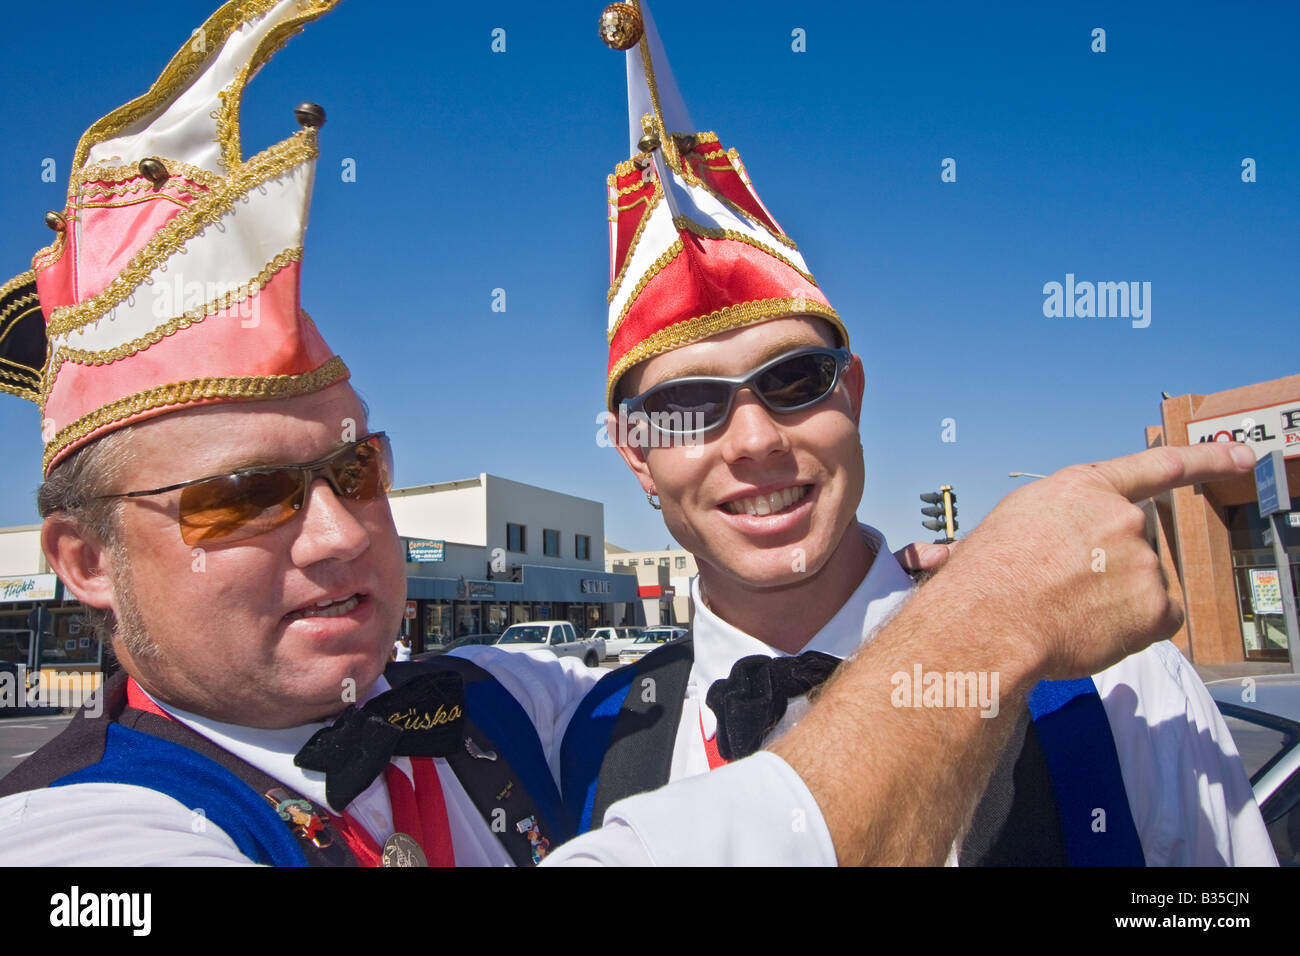 Two local men from Swakopmund coastal Namibia town are heading for local German Kuska carnival - Stock Image